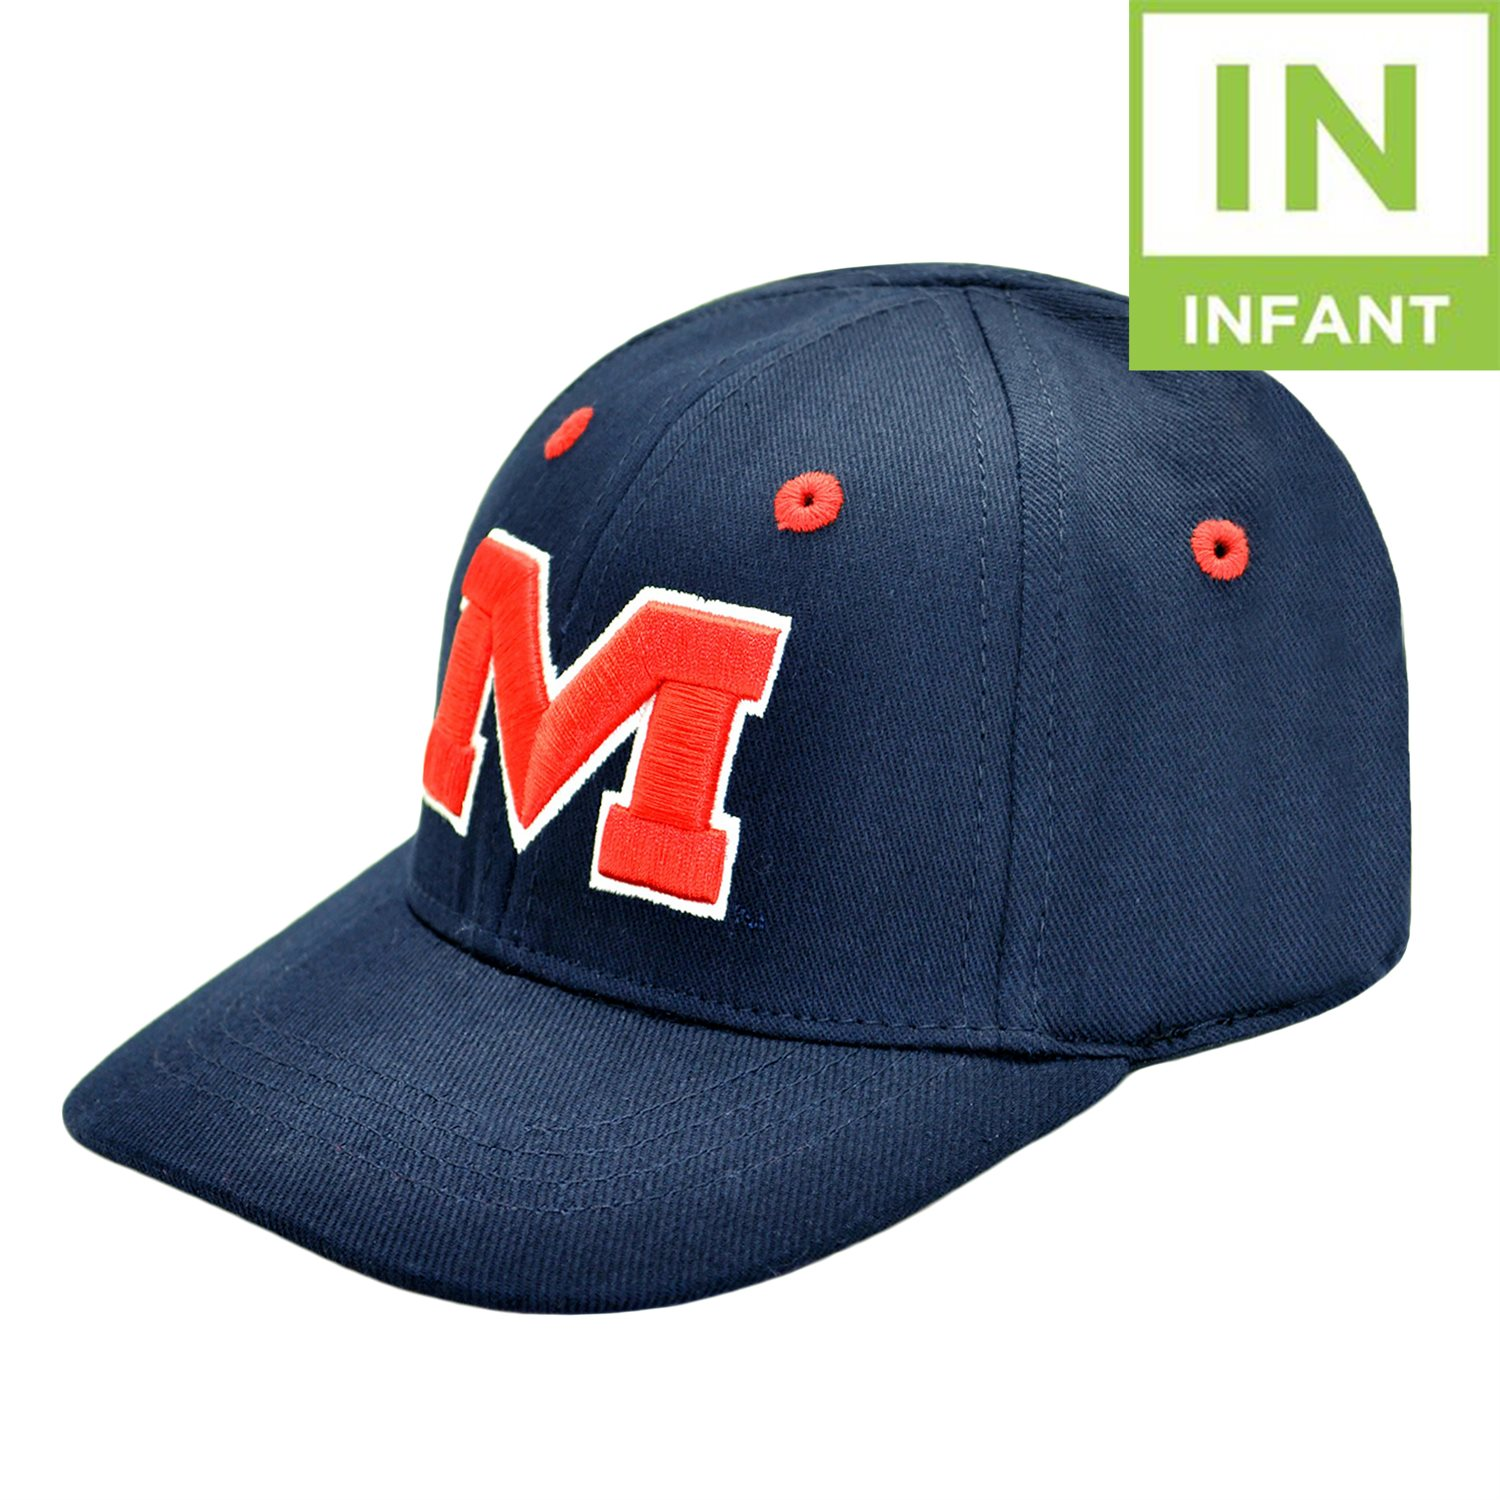 Cub Navy M One Fit Infant Hat